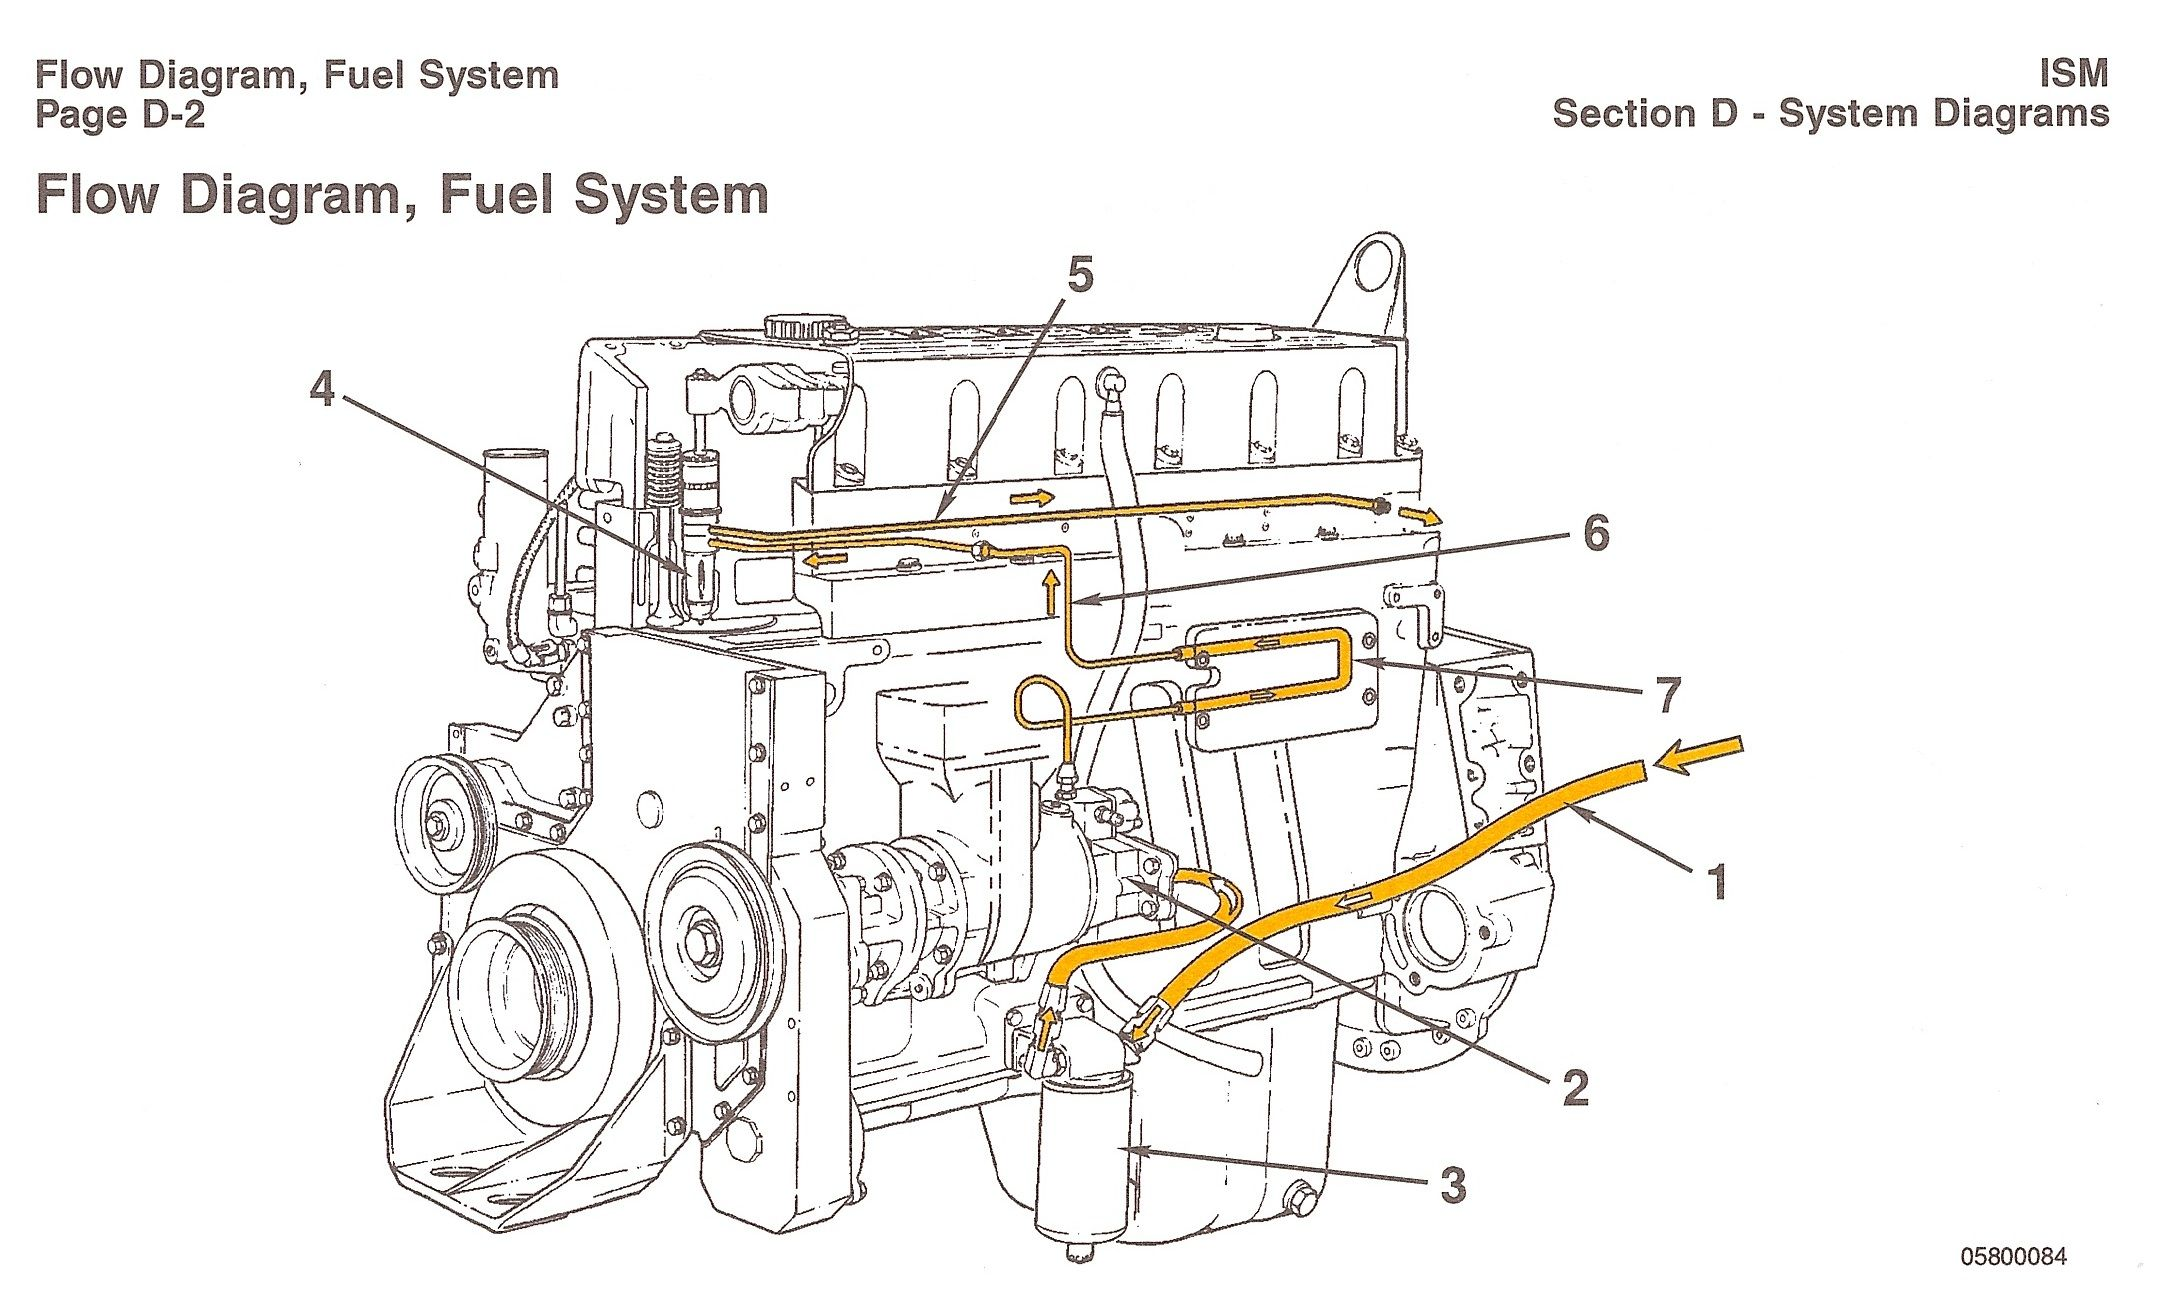 cummins fuel system engine pinterest cummins and engine rh pinterest com mack mp8 fuel system diagram DT466 Fuel System Diagram